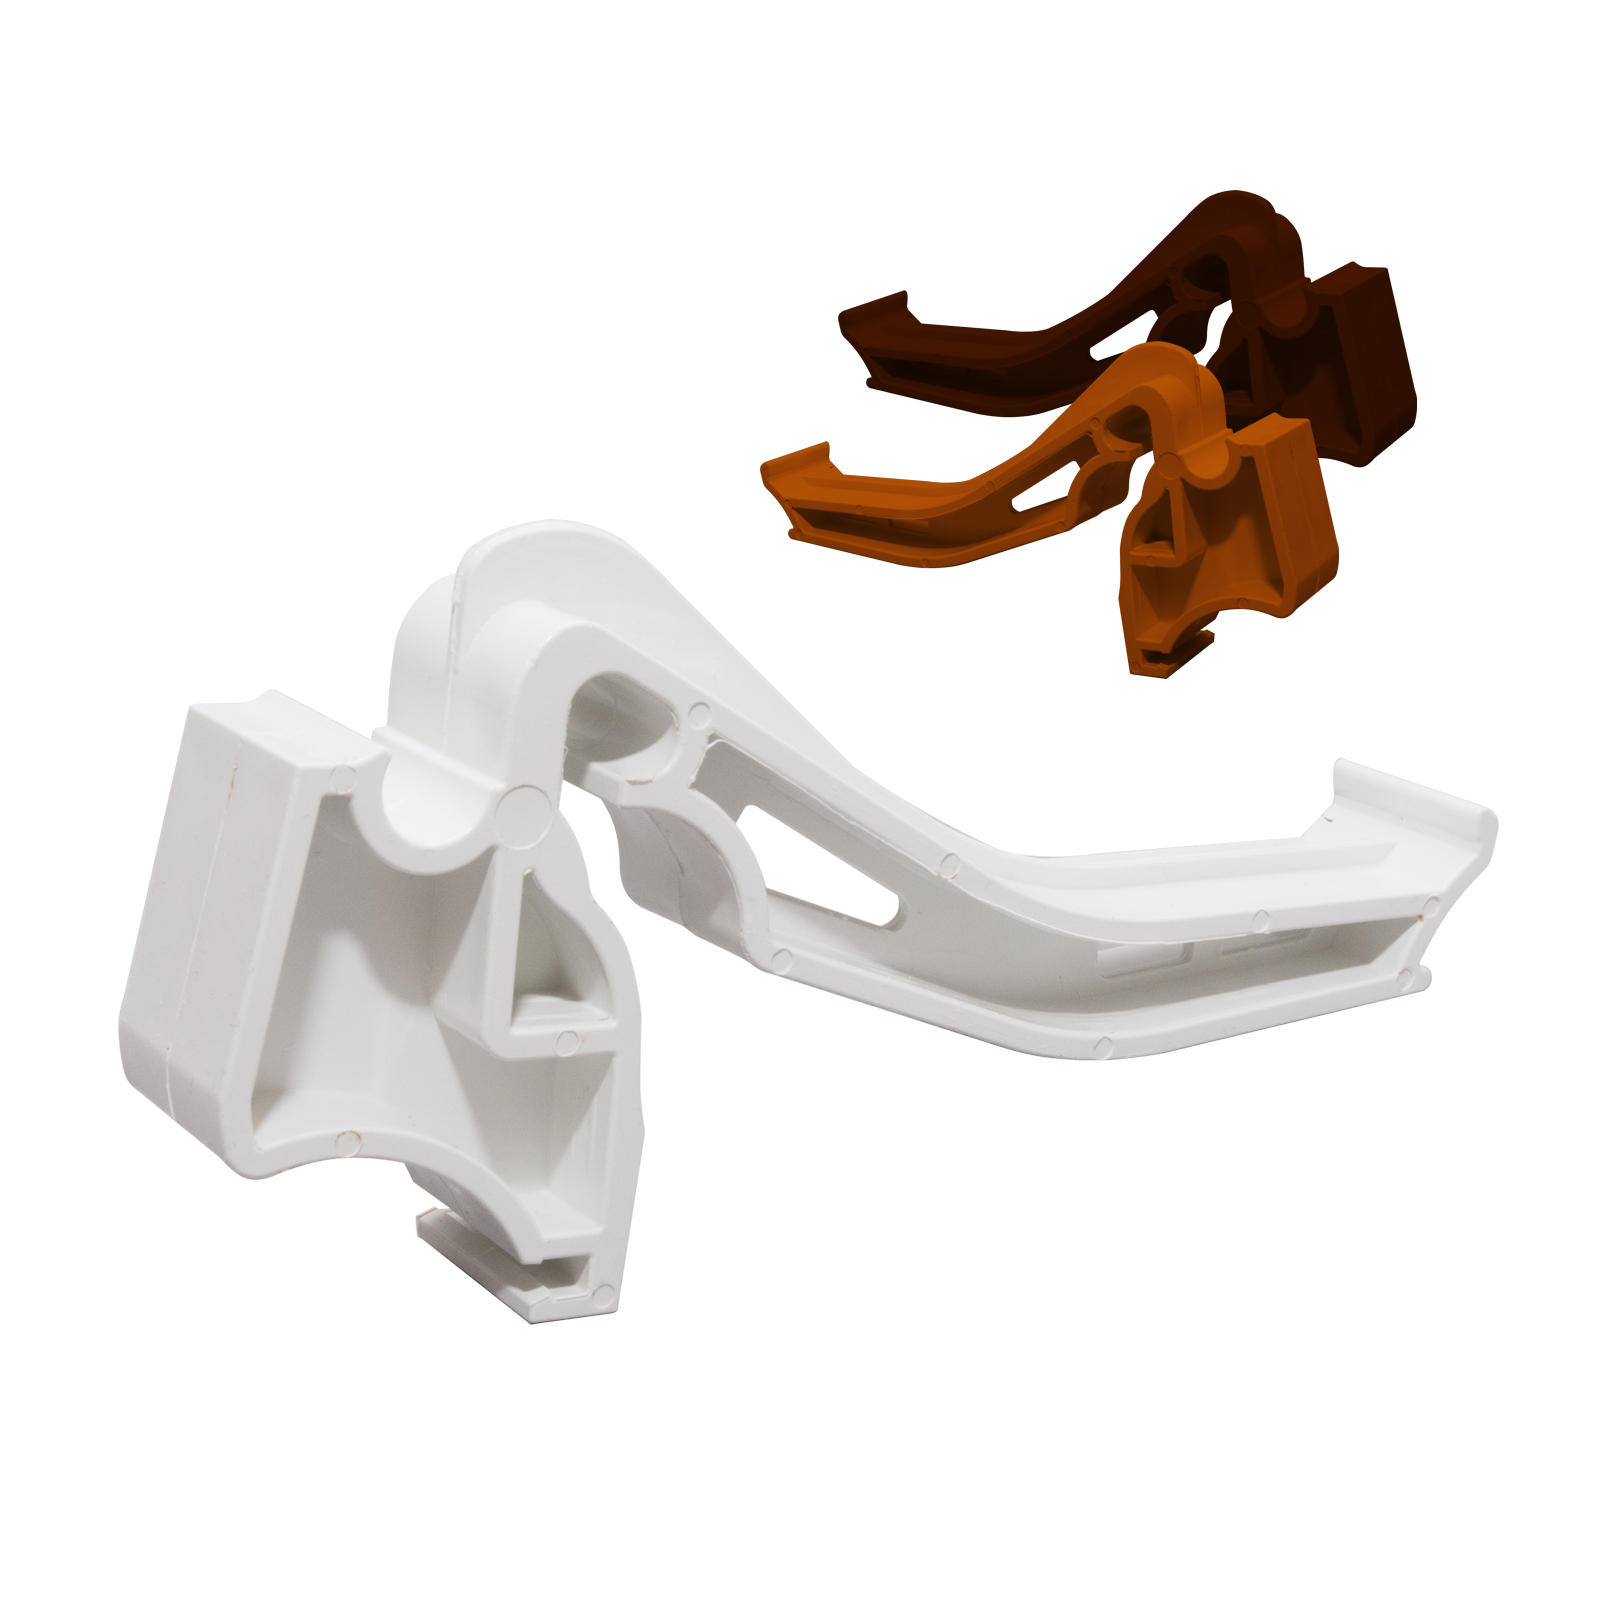 Synseal Gutter Parts Conservatory Parts Truly Pvc